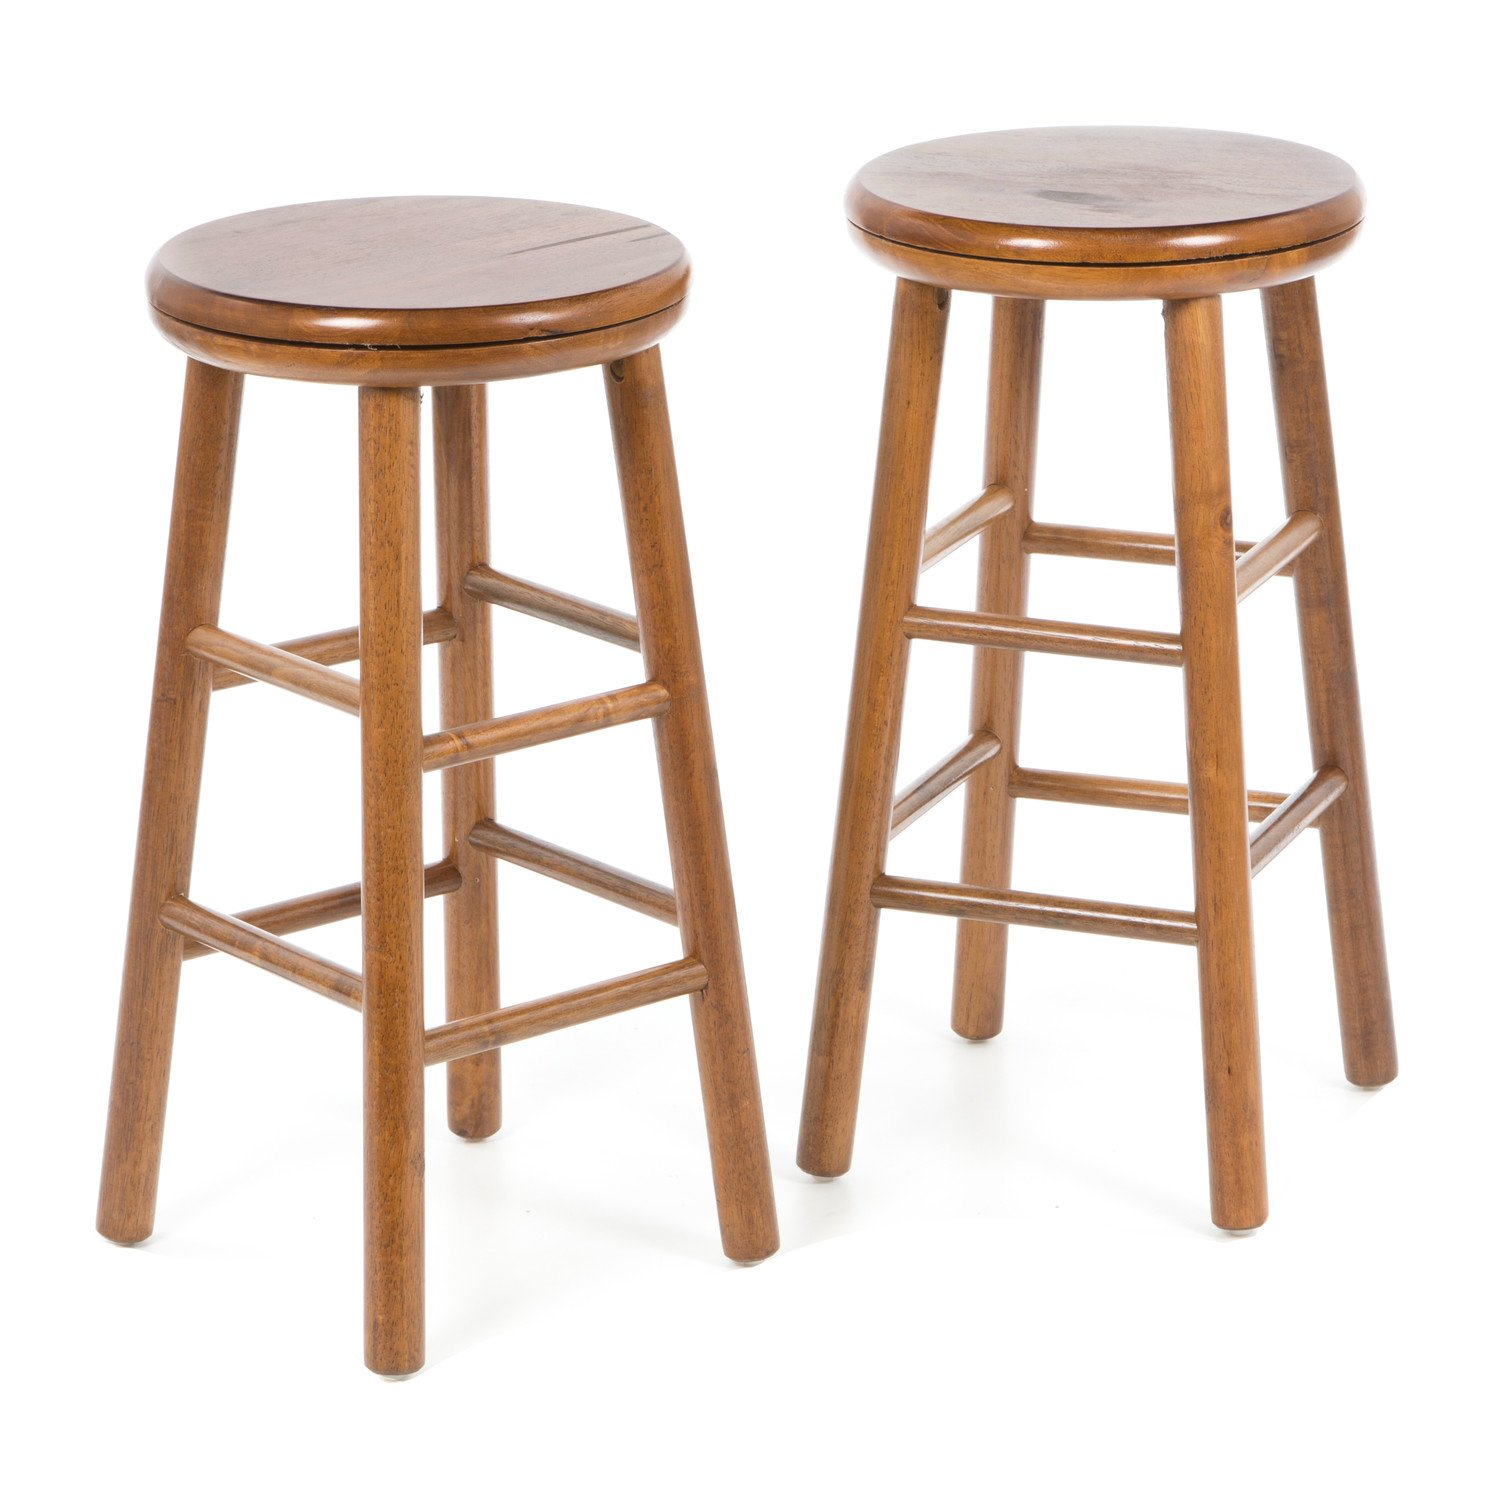 Amazoncom Set Of Two 25 Swivel Bar Stool Kitchen Dining